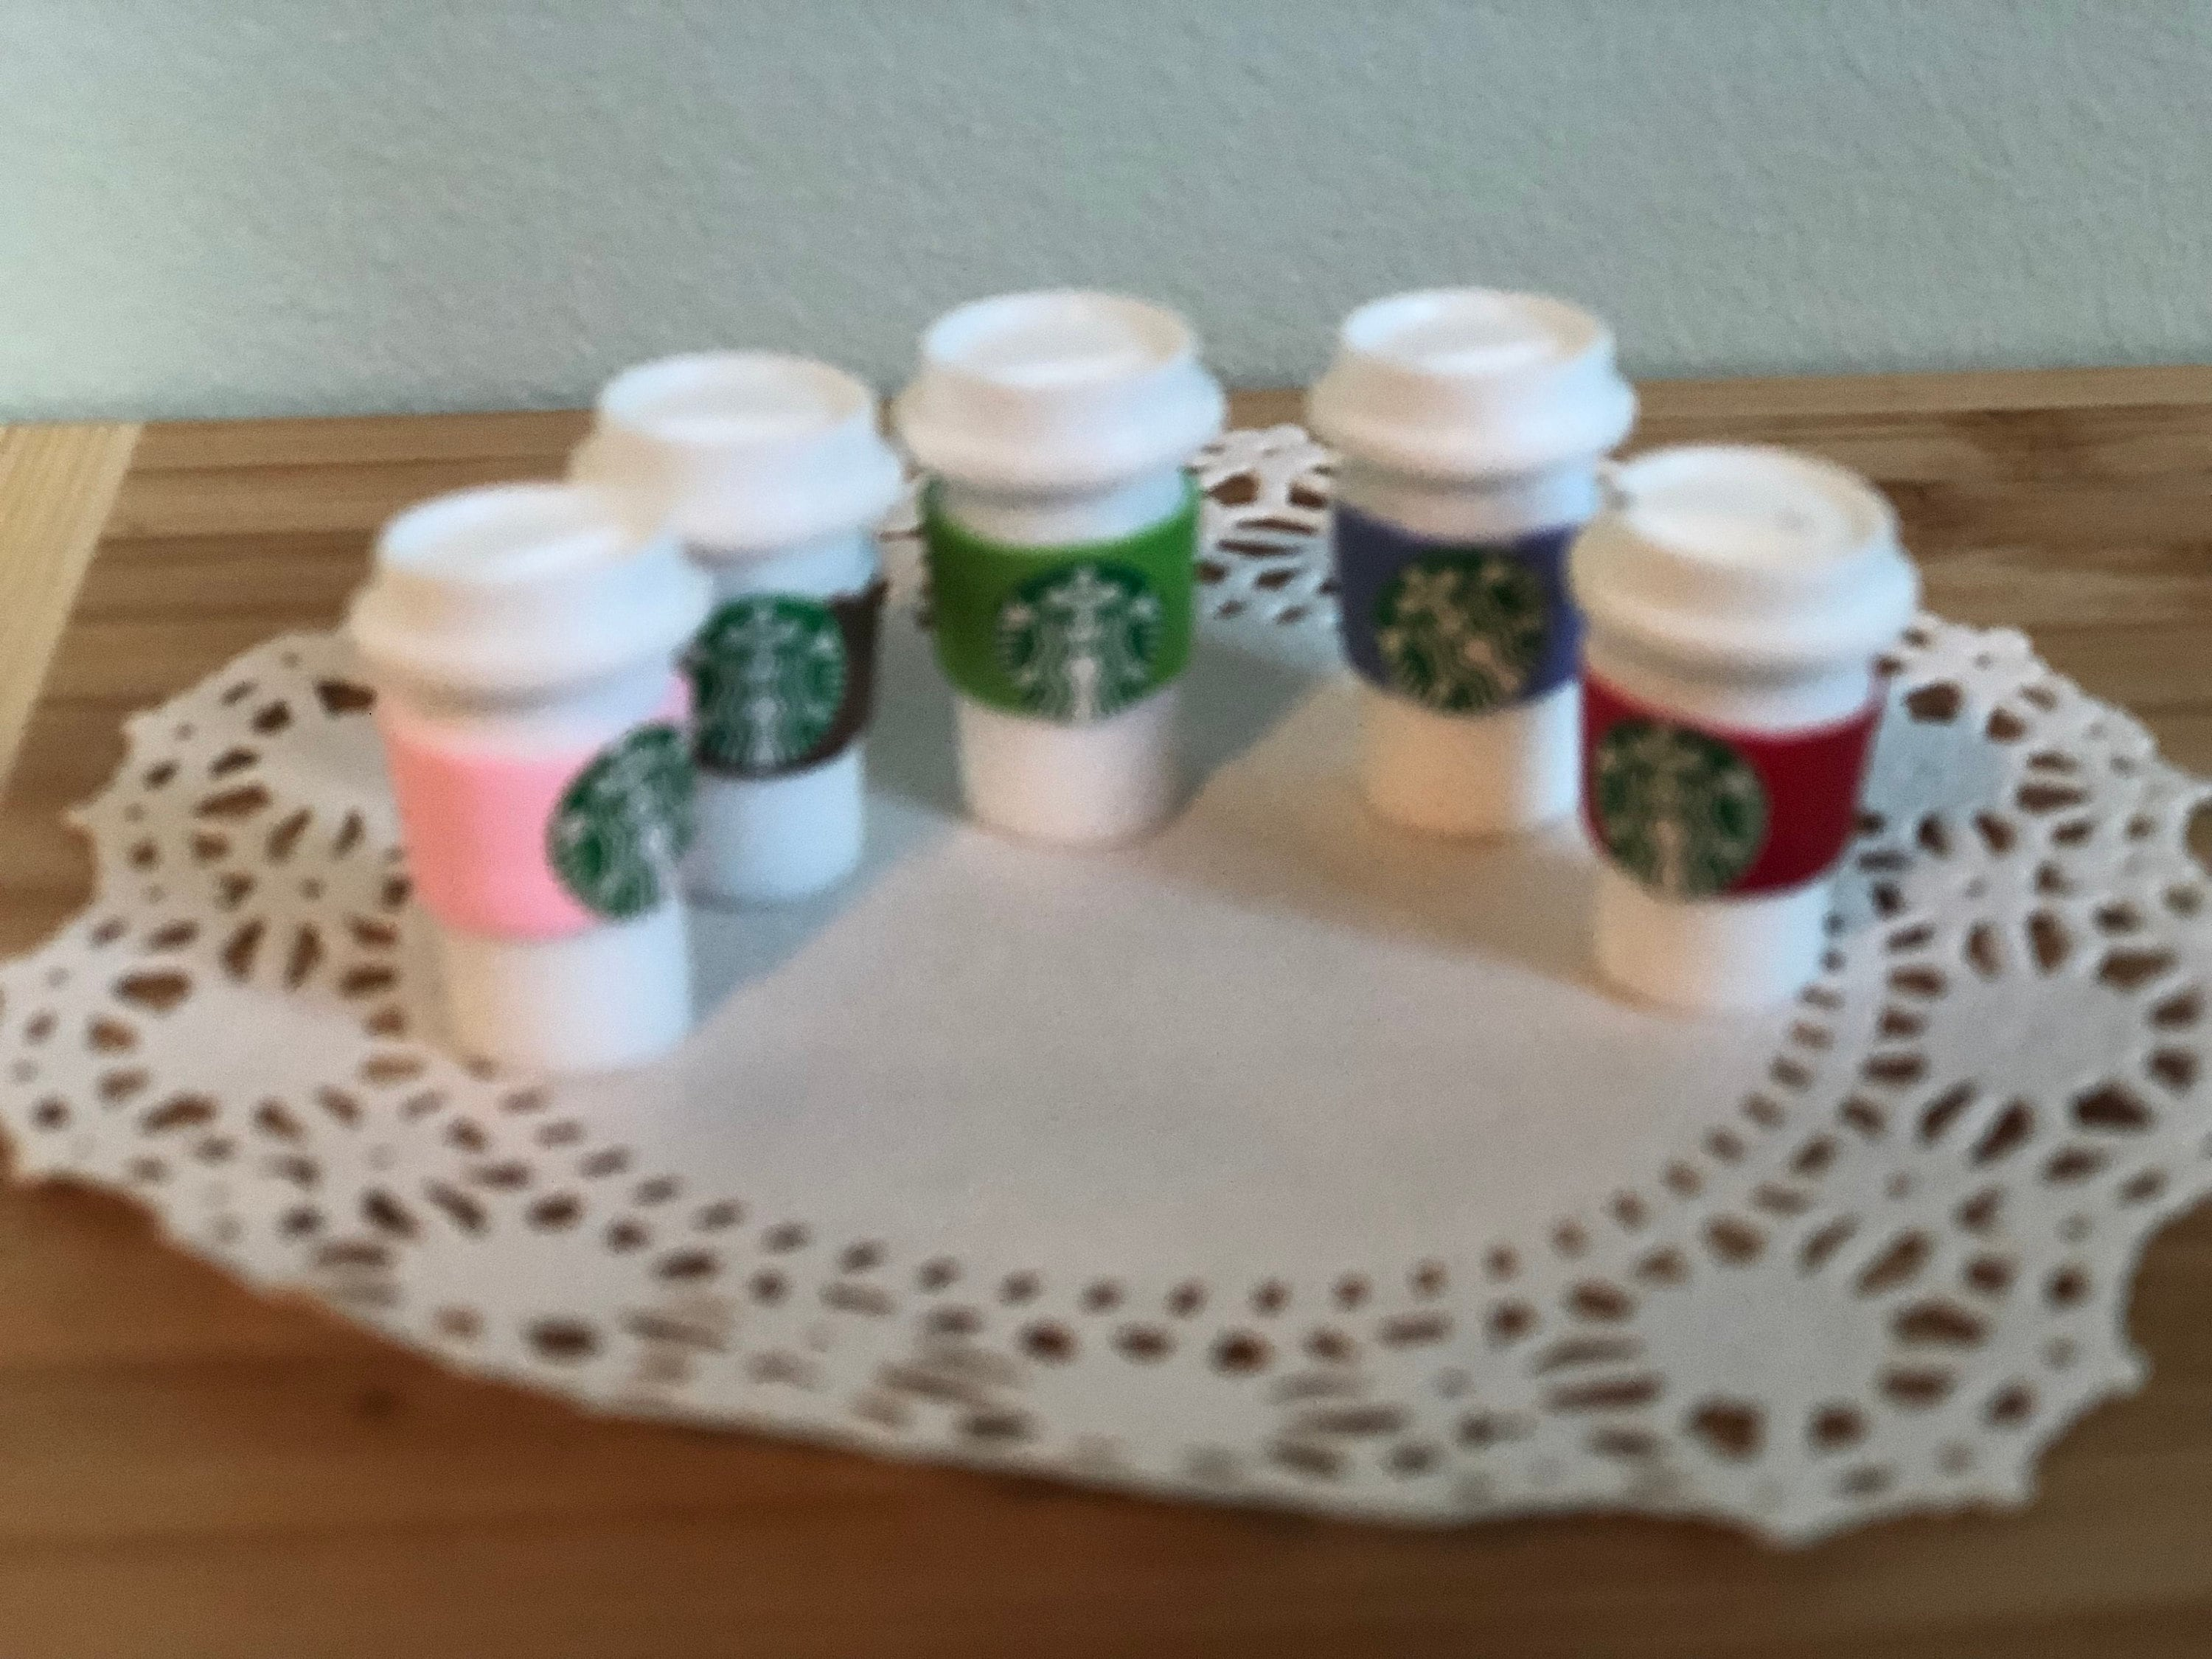 Discounted Resin Starbucks Tumbler Cups Cabochons 6 peices